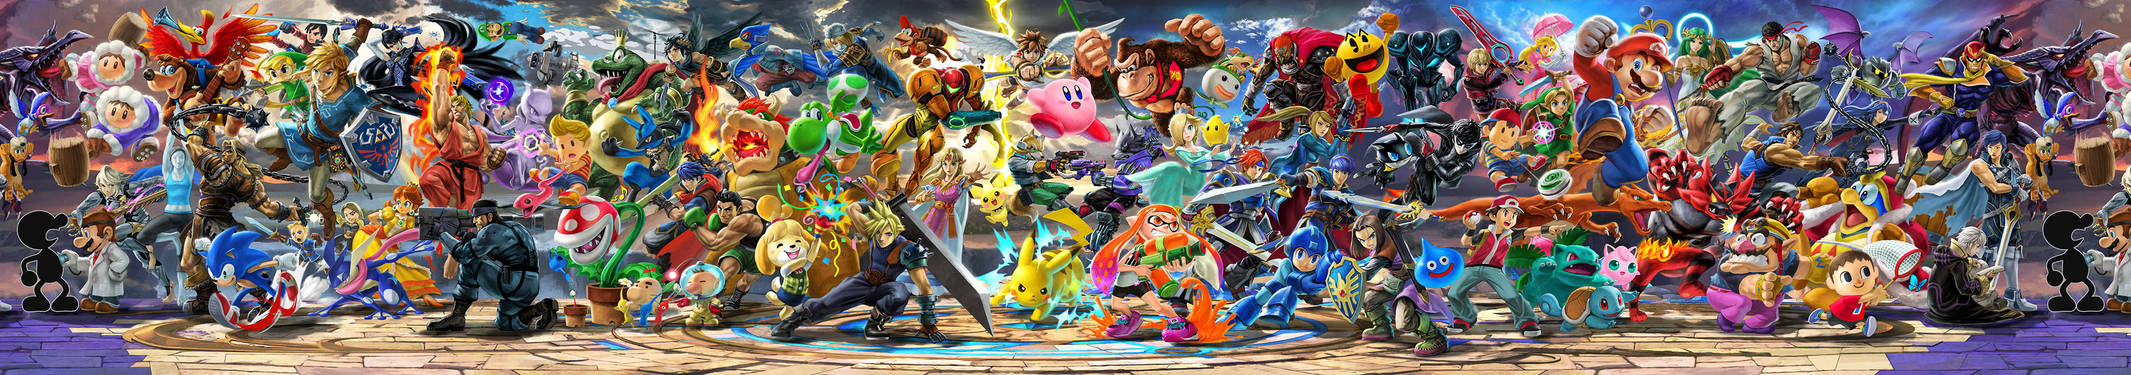 Super Smash Bros. Ultimate OFFICIAL Panoramic Art